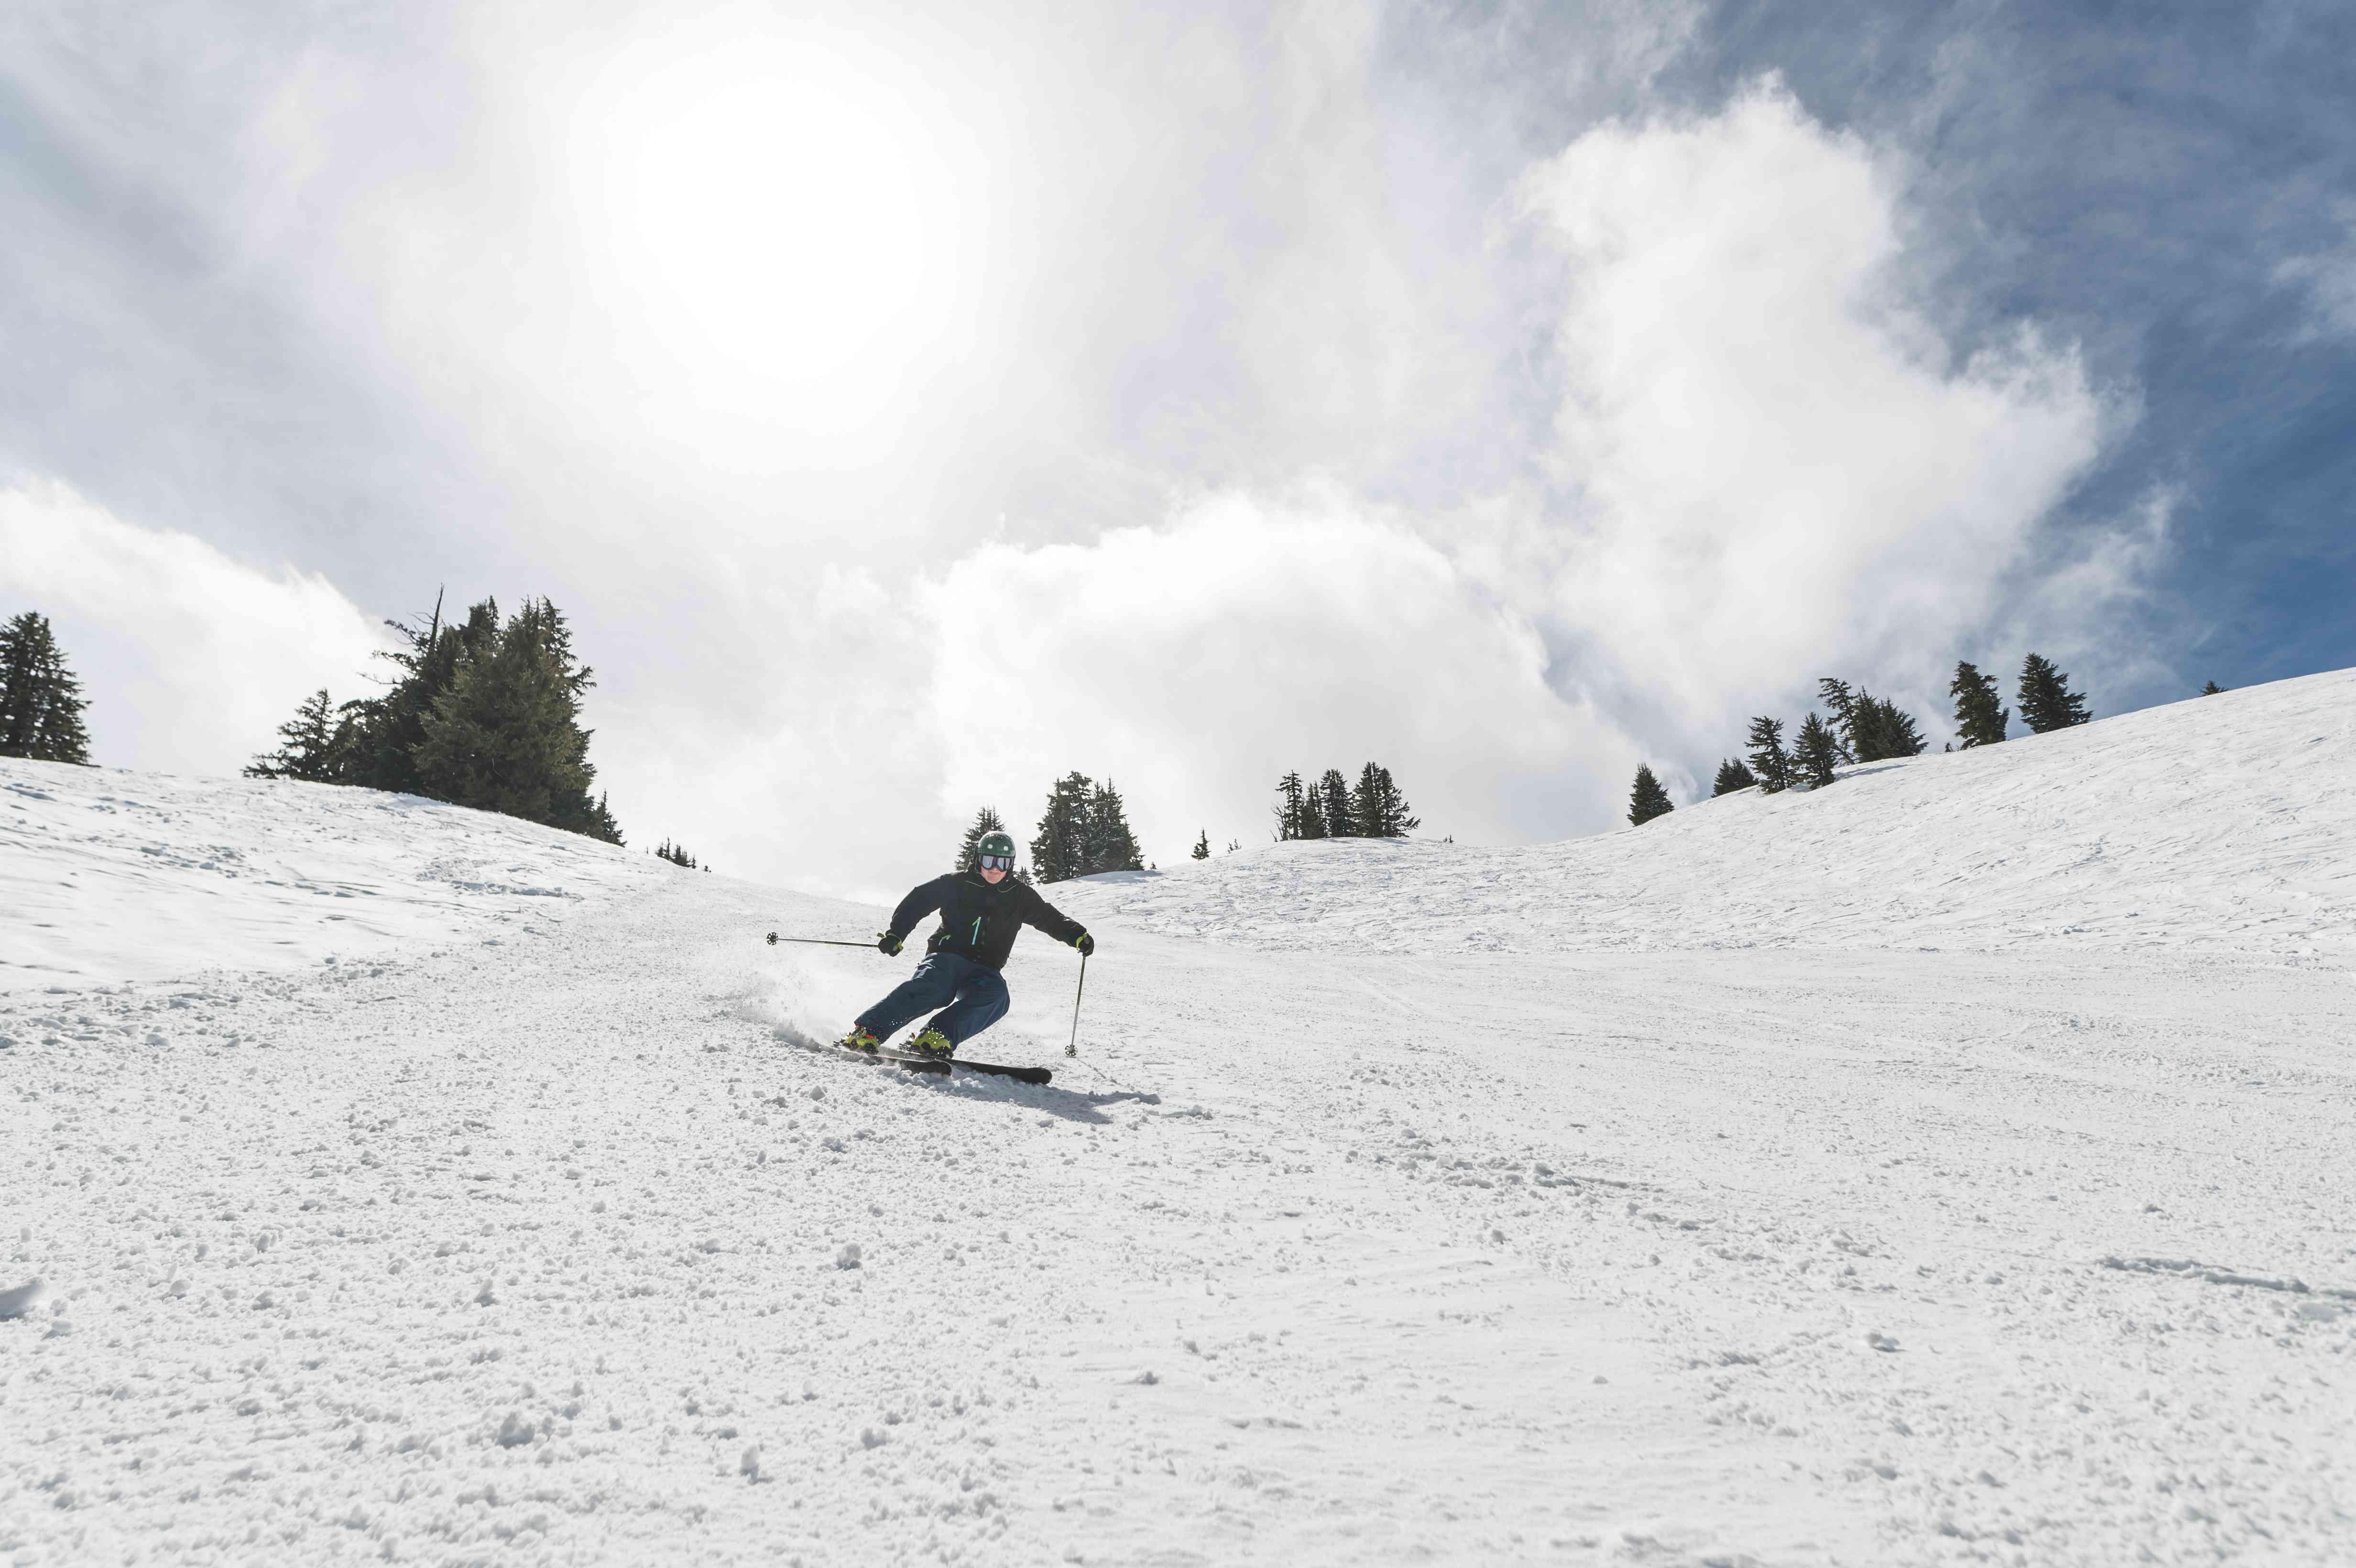 Male skiier racing down snow covered slope on a sunny afternoon.